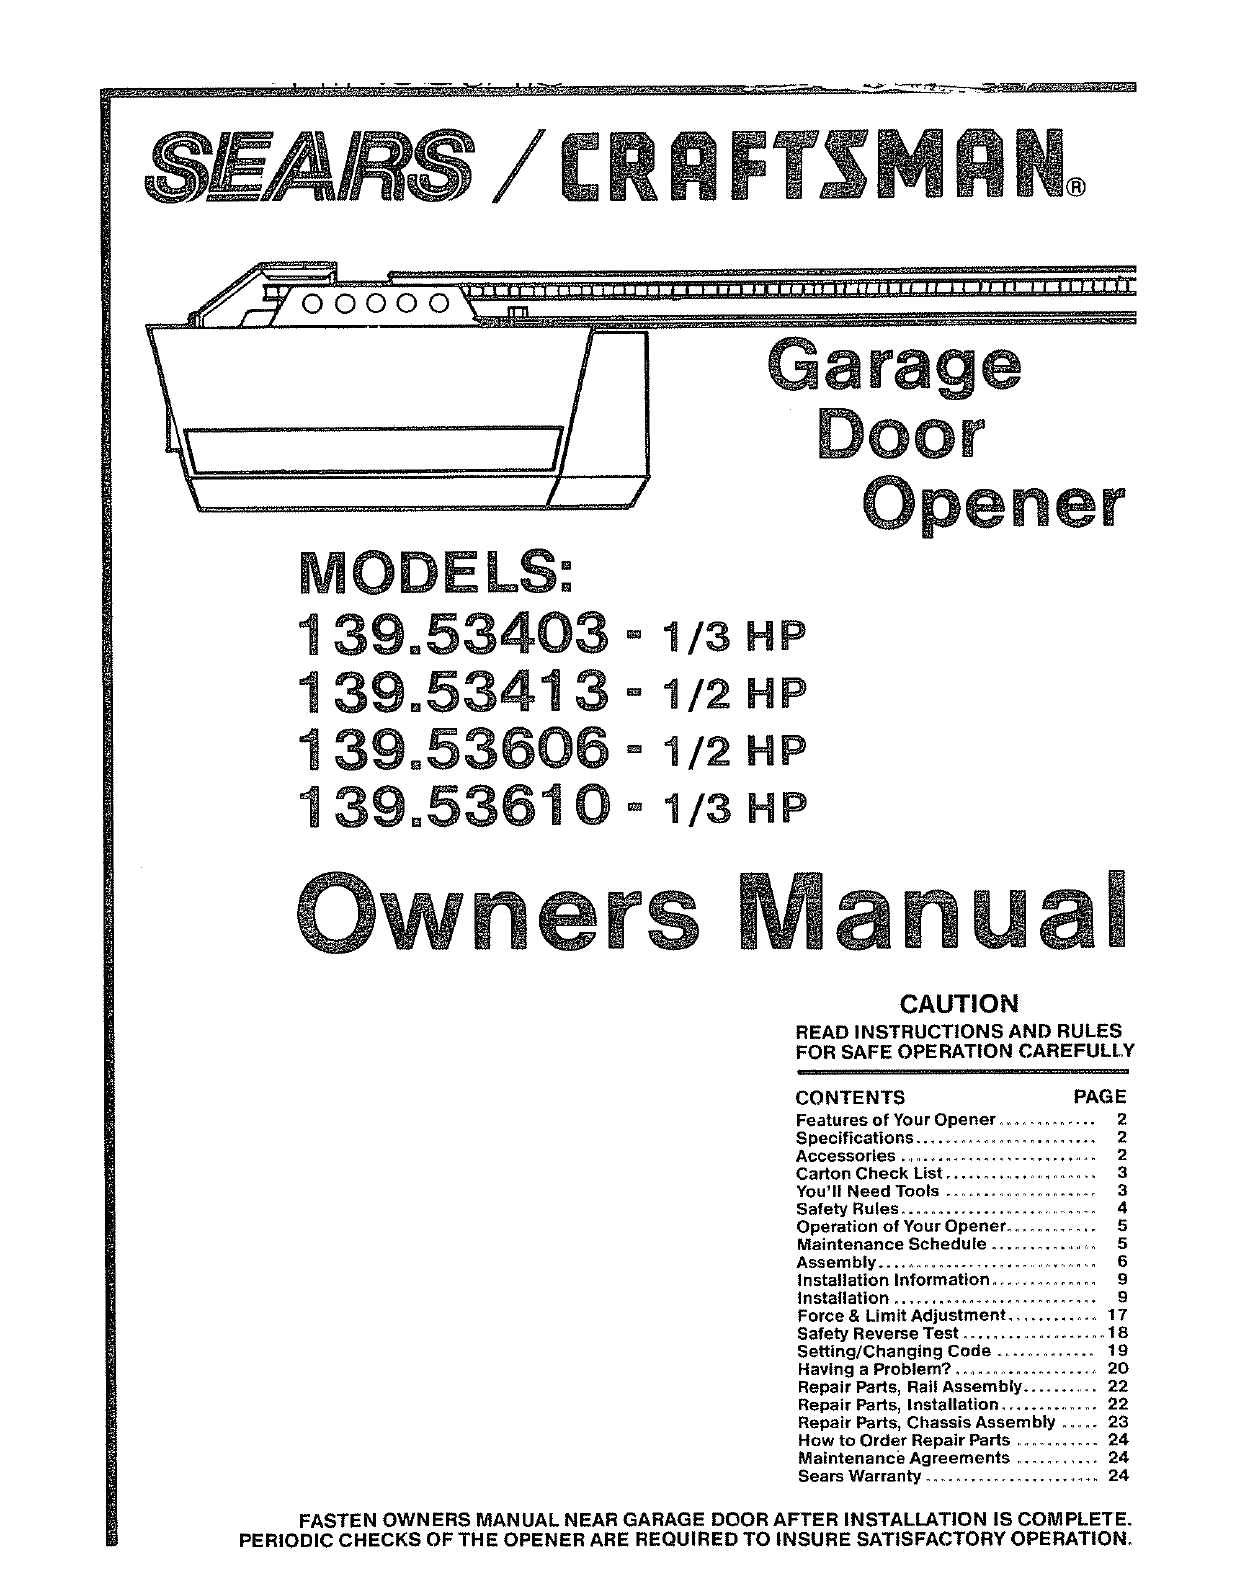 4e24e83f 95d3 4892 ae01 8deb09c598a8 bg1 craftsman garage door opener 139 53403 user guide manualsonline com Chamberlain Garage Door Opener Wiring- Diagram at bakdesigns.co